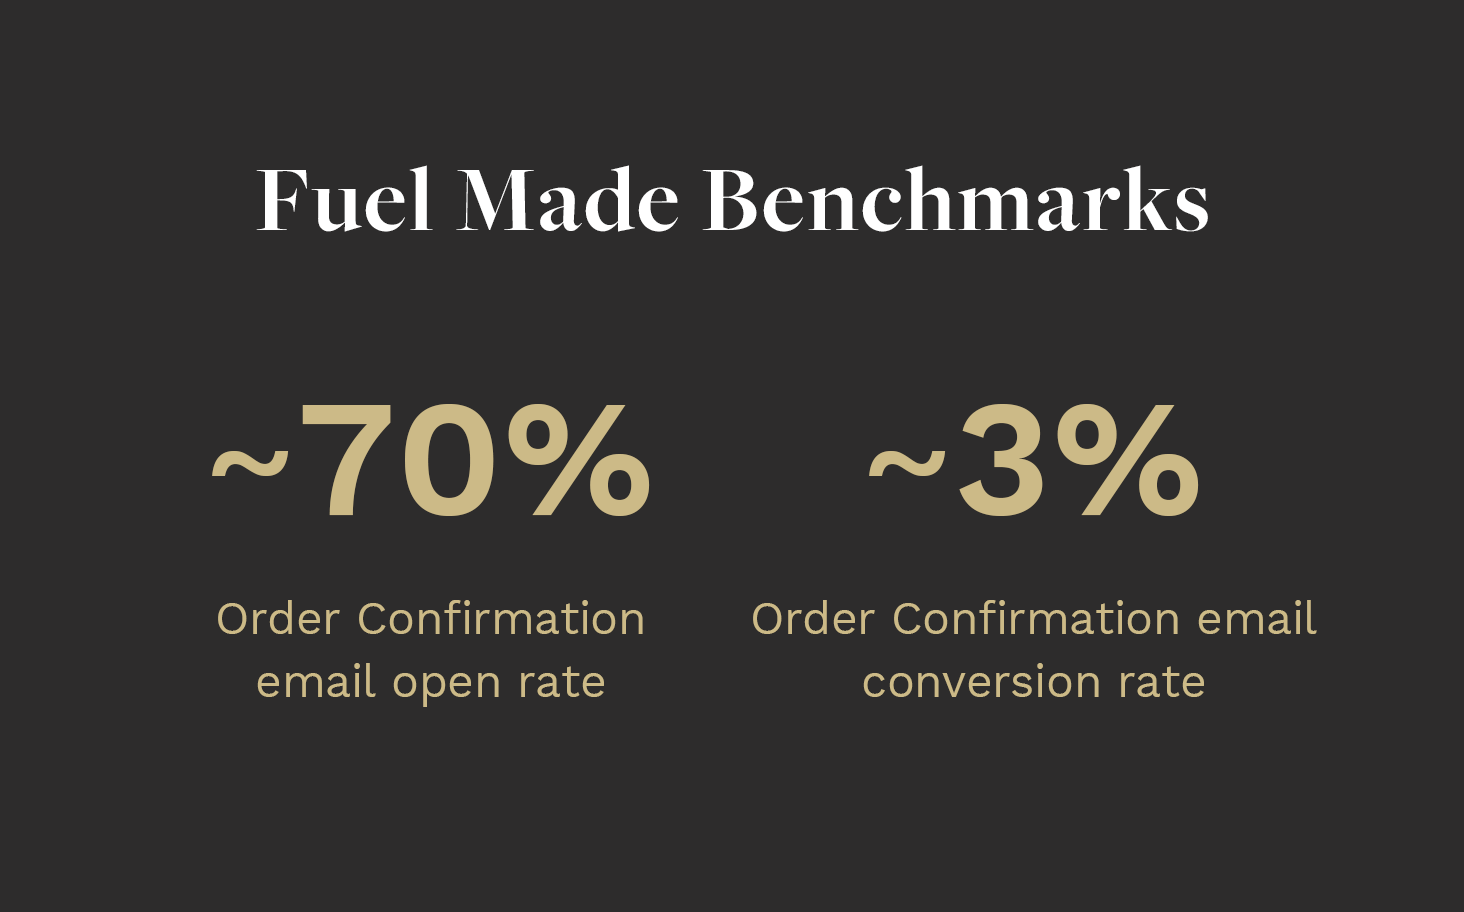 Fuel Made Benchmarks